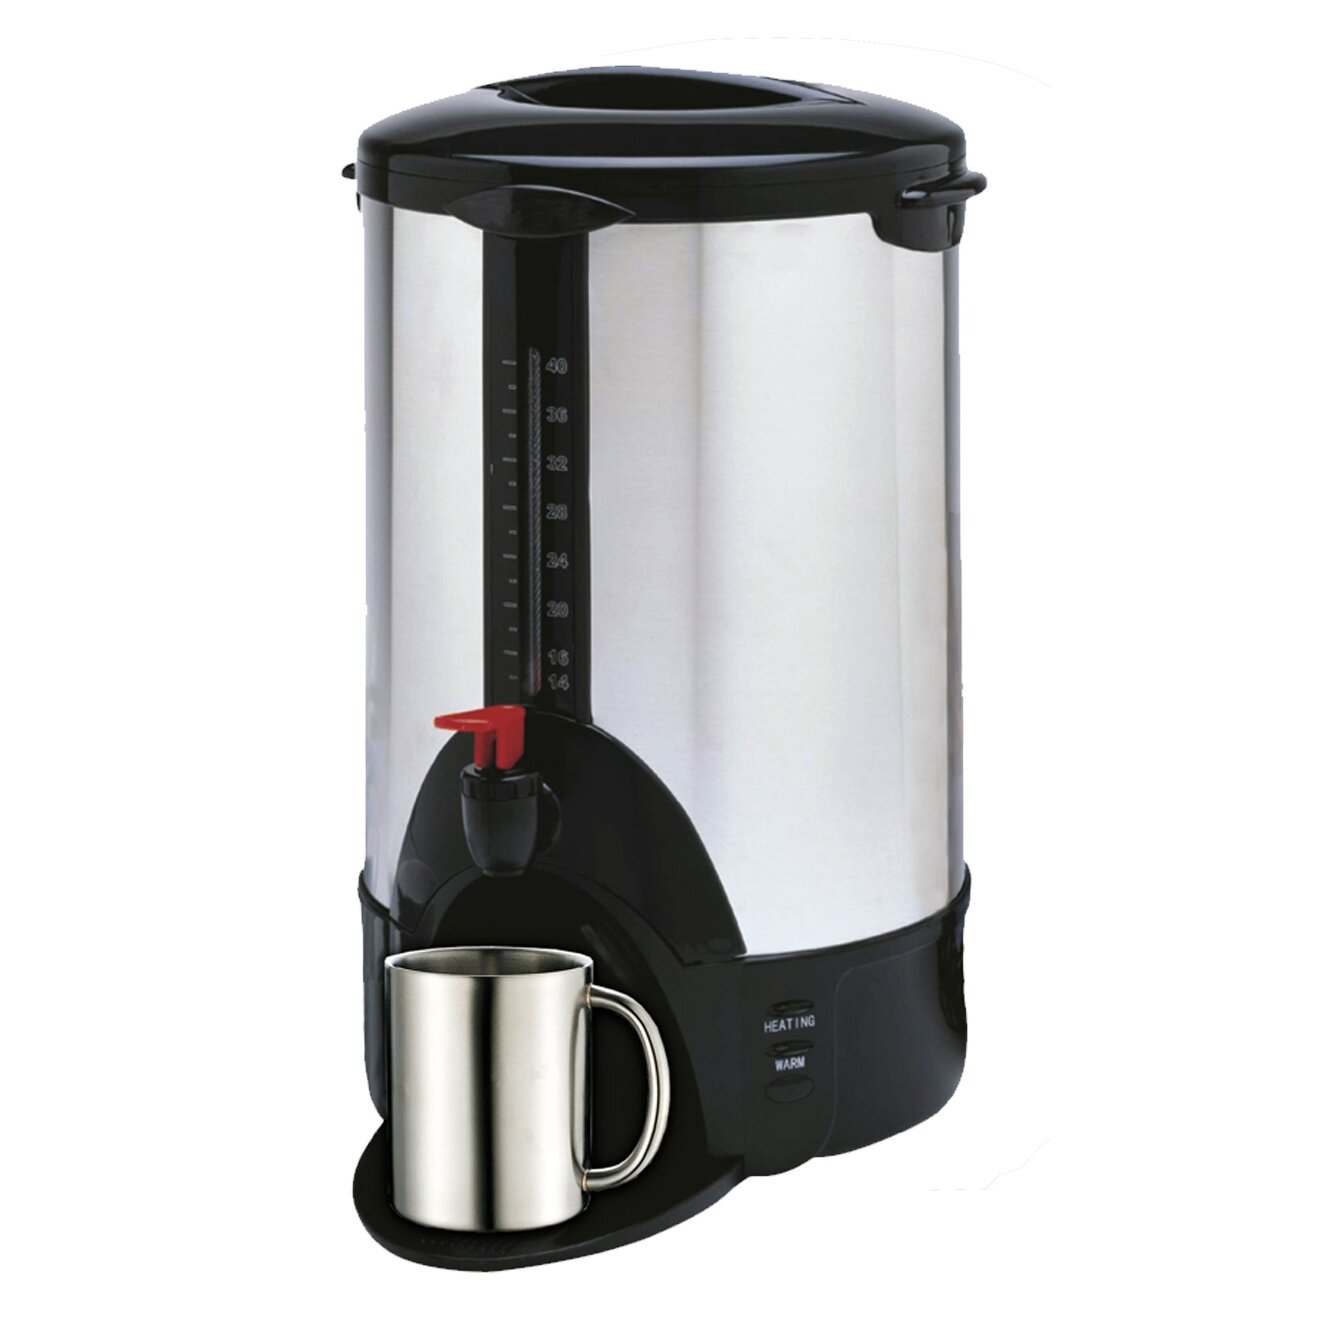 Electric Percolator Coffee Maker Reviews : Cookinex Kung Fu